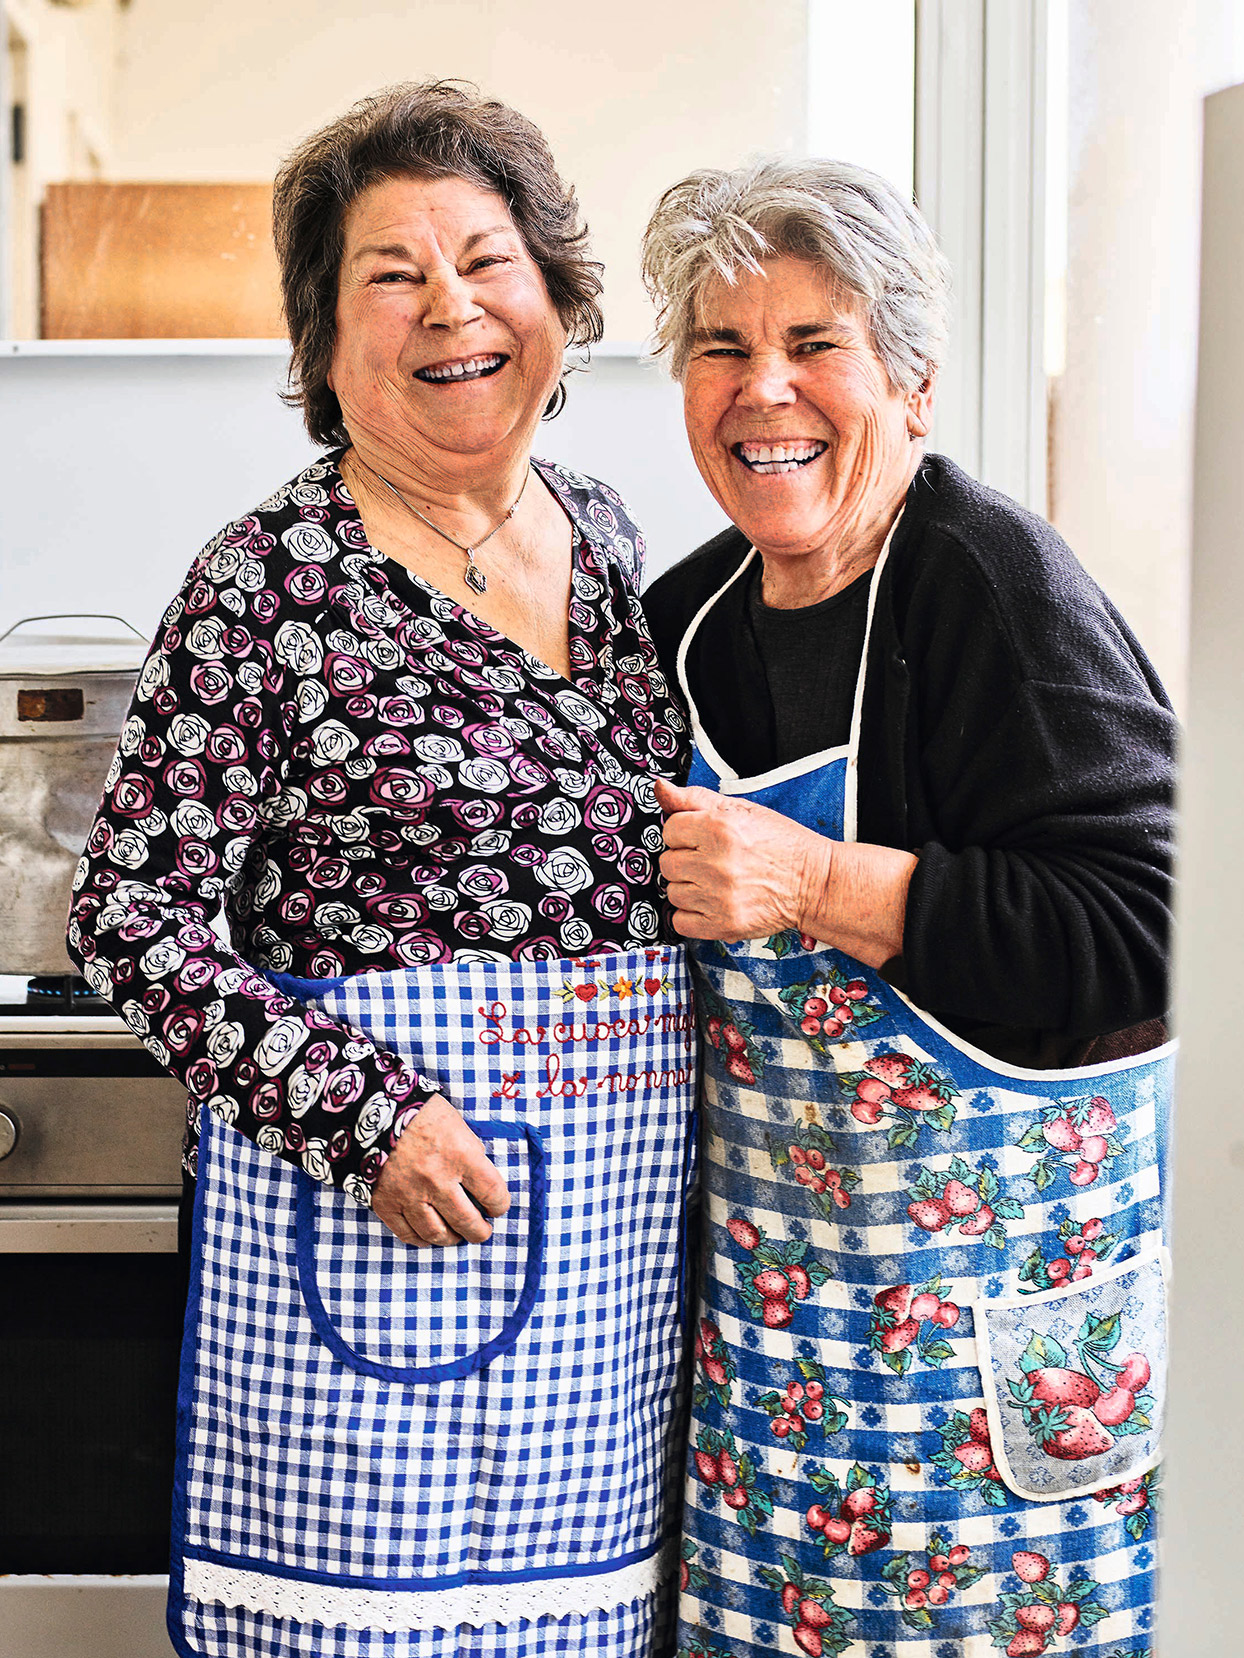 two older Italian women kitchen smiles frilly blue aprons